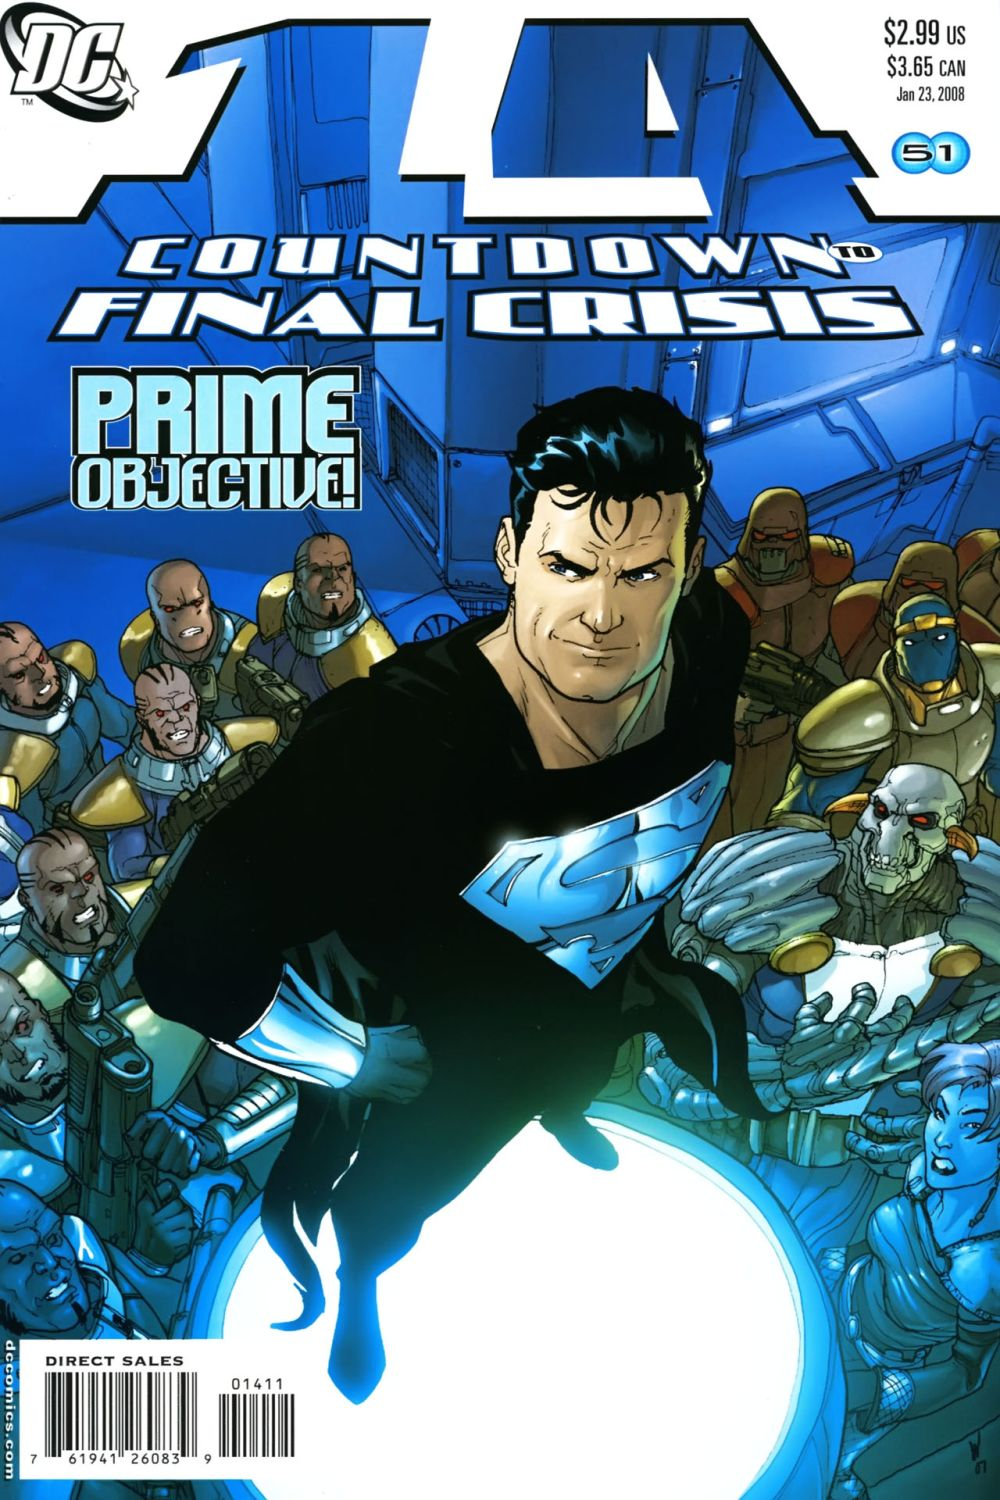 Countdown To Infinite Crisis [DC] Mini 1 0014.jpg